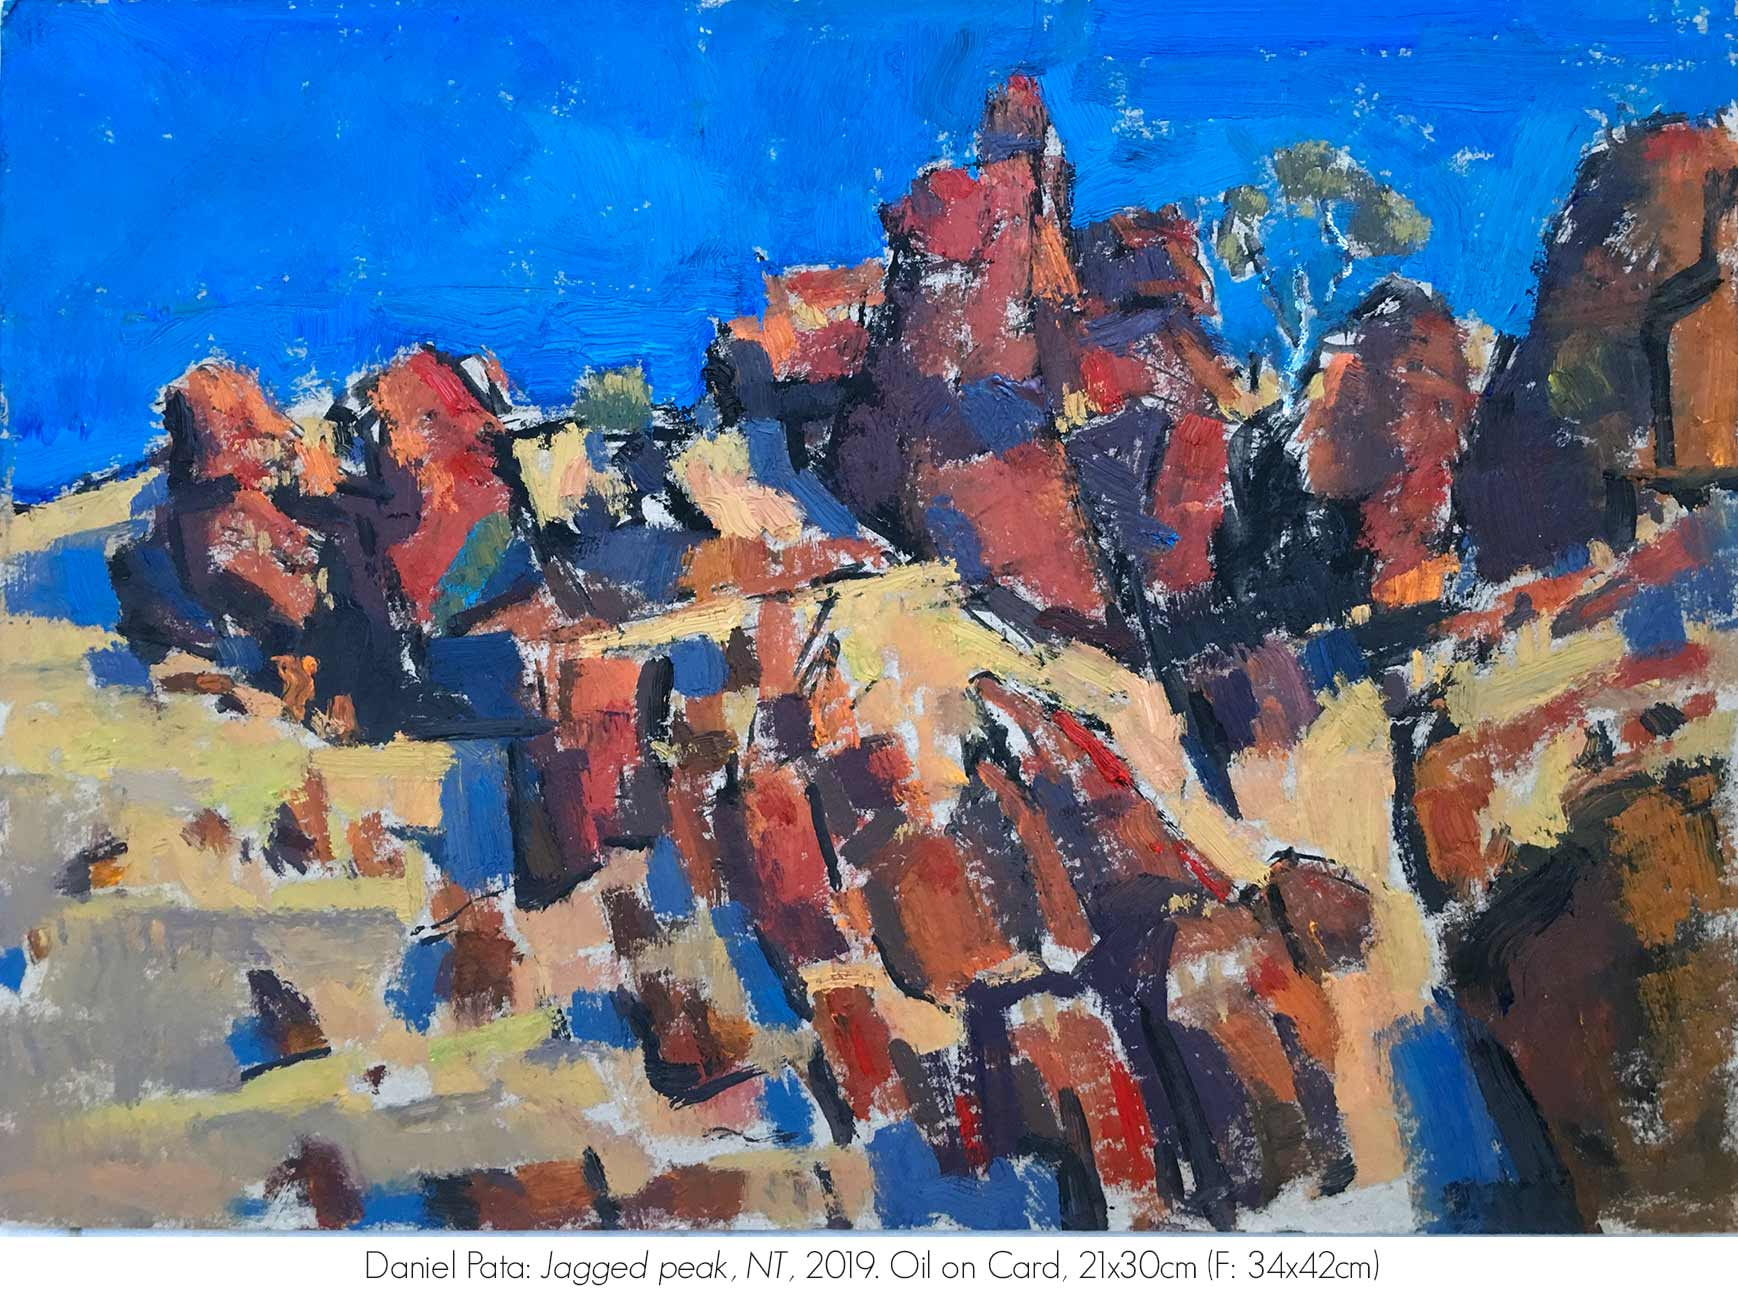 Artsite Galleries Exhibition | REFLECTIONS OF AN ANCIENT LAND: The MacDonnell Ranges | Daniel Pata. Exhibition is Open June - July 2020. Saturdays and Sundays 11am - 5pm and By Appointment Monday - Friday.